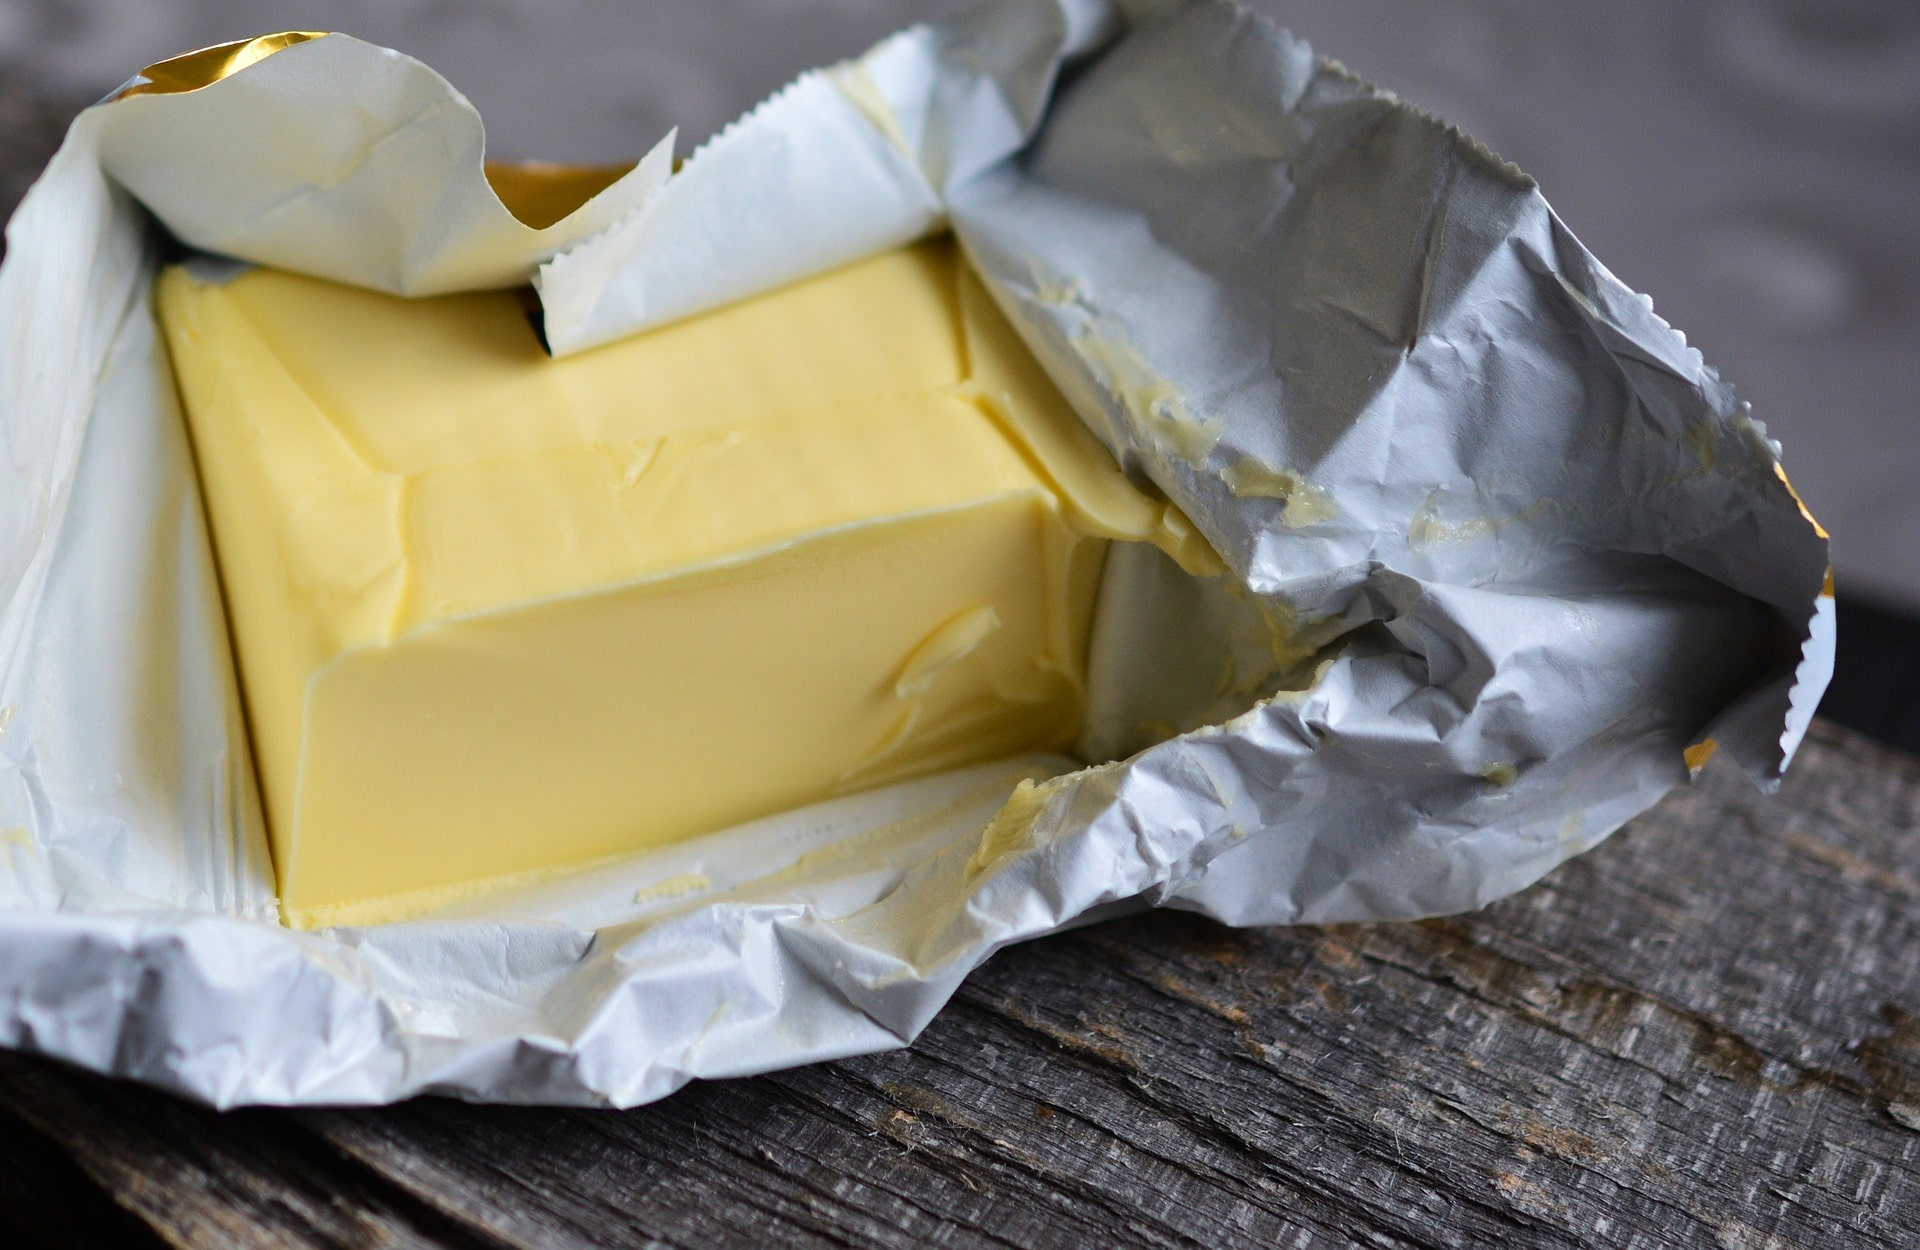 The Butter Museum in Cork is a cool site off the beaten path in Ireland